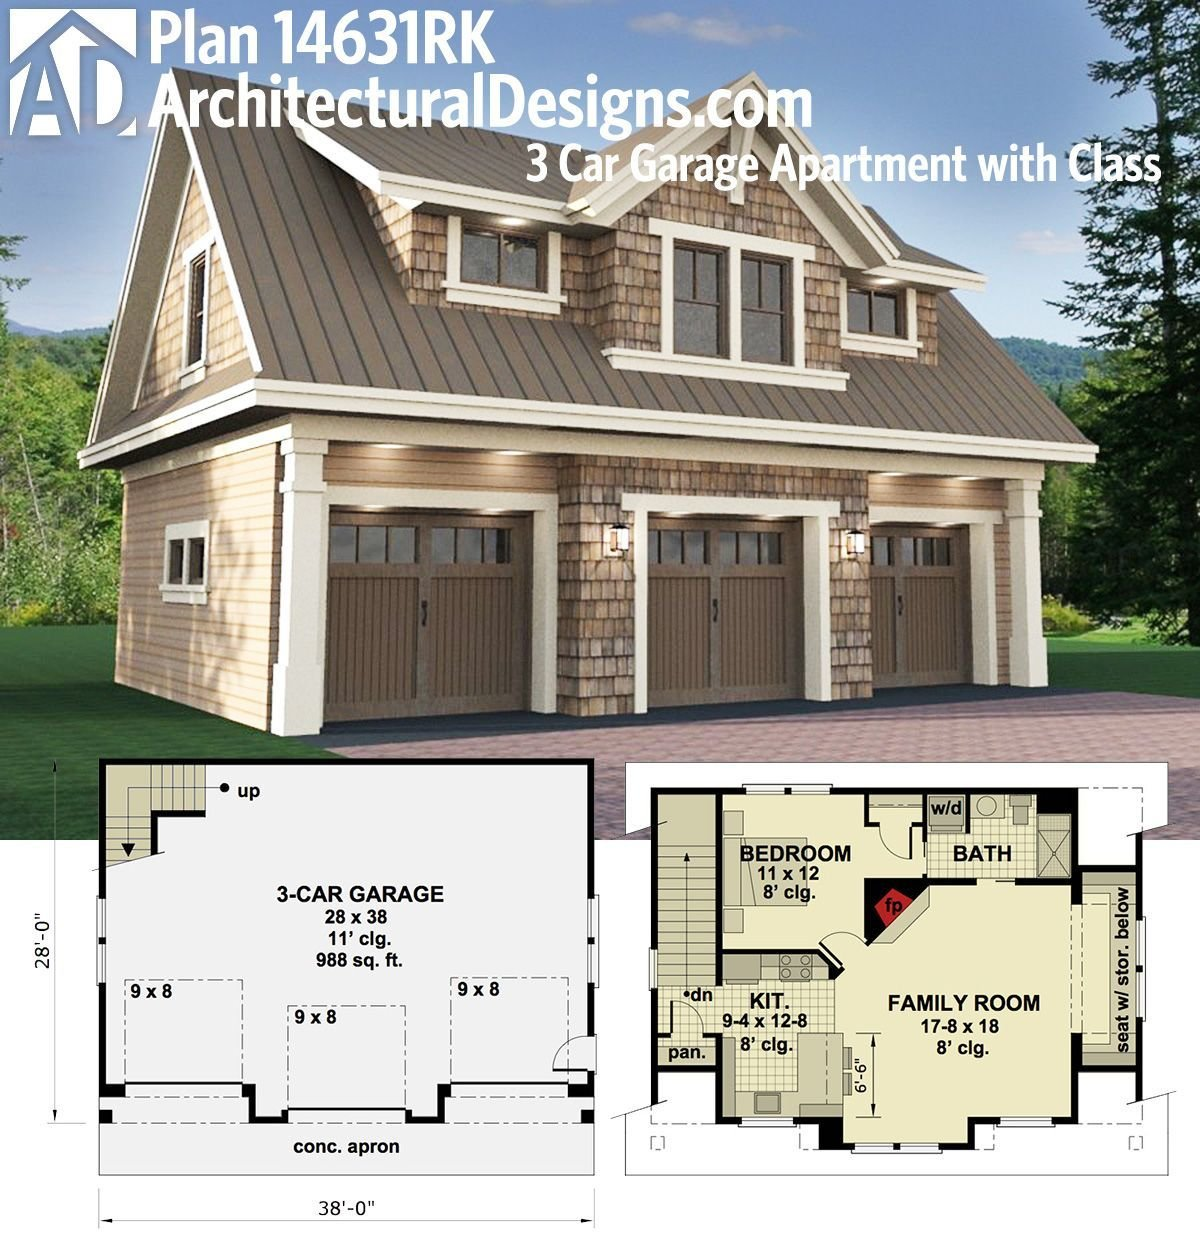 Best Plan 14631Rk 3 Car Garage Apartment With Class In 2019 With Pictures